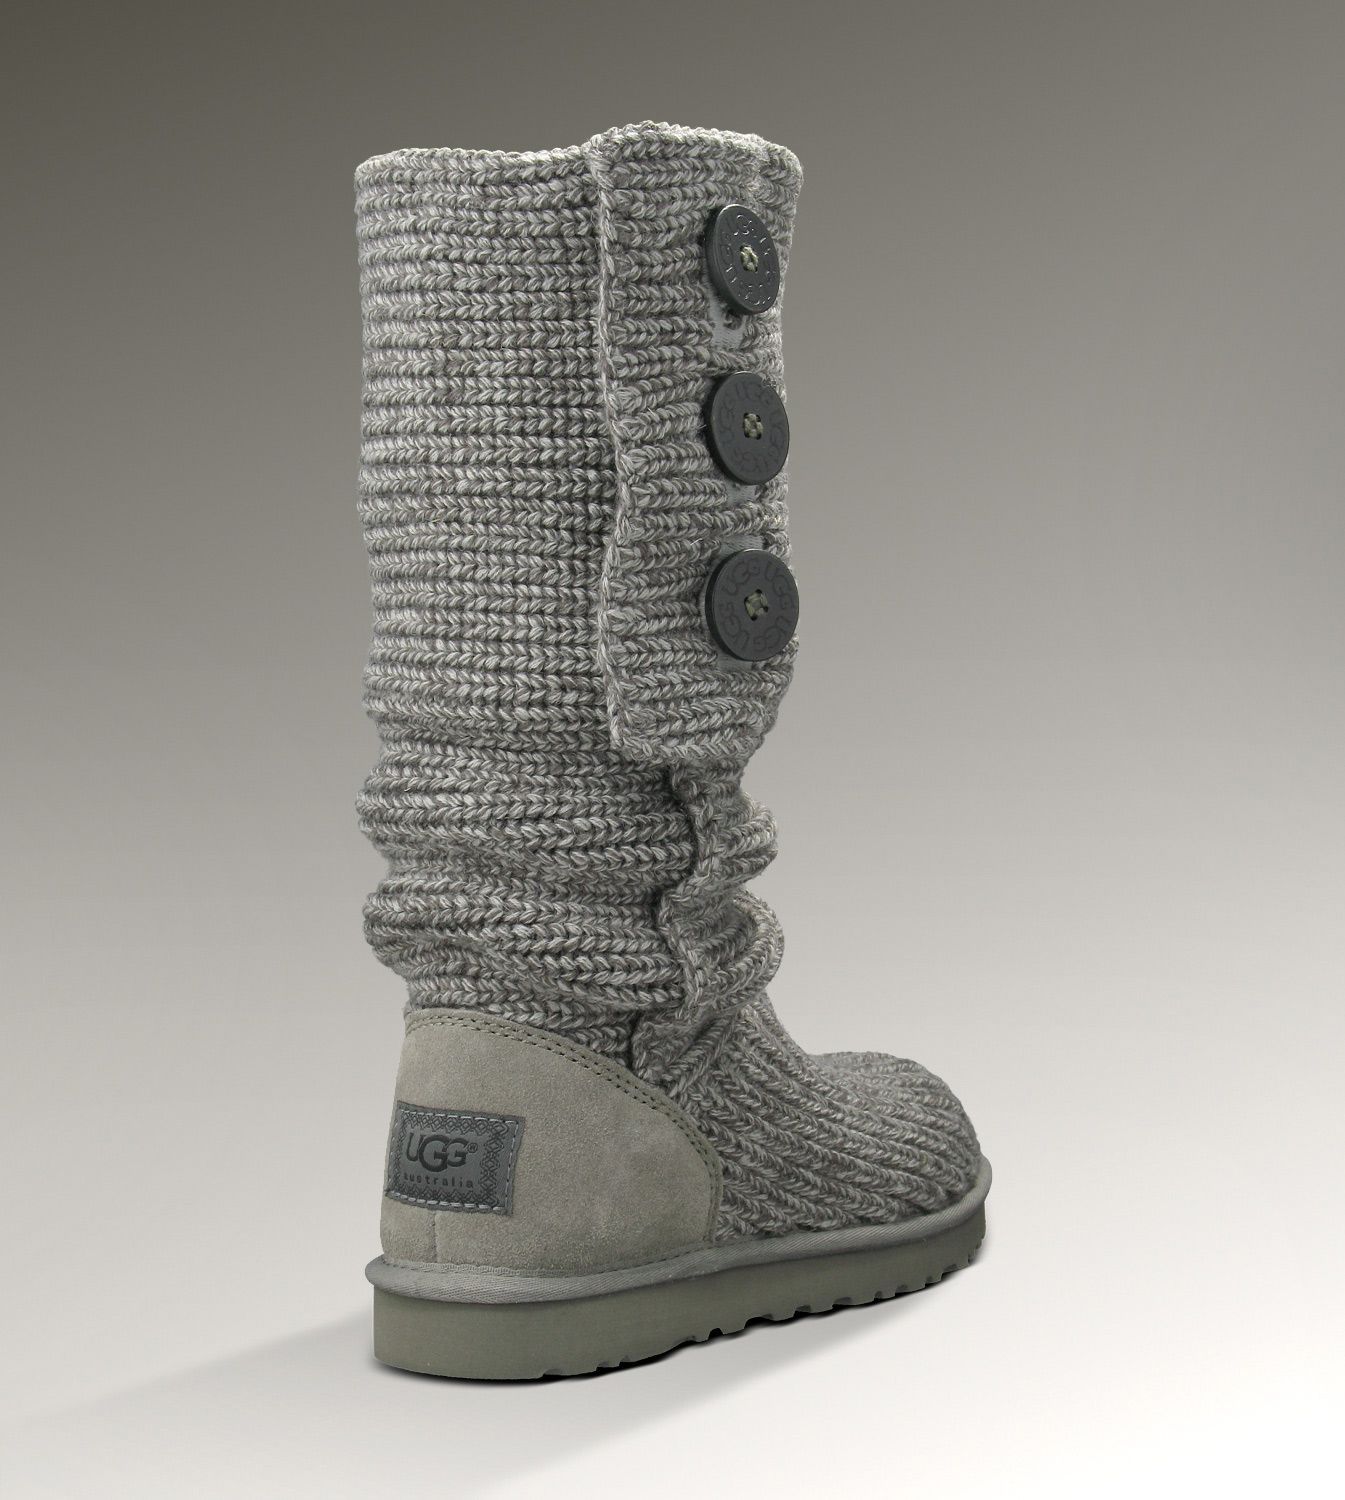 7bfde0de43f UGG® Classic Cardy - Crochet Knit Boots in Grey from UGGAustralia ...